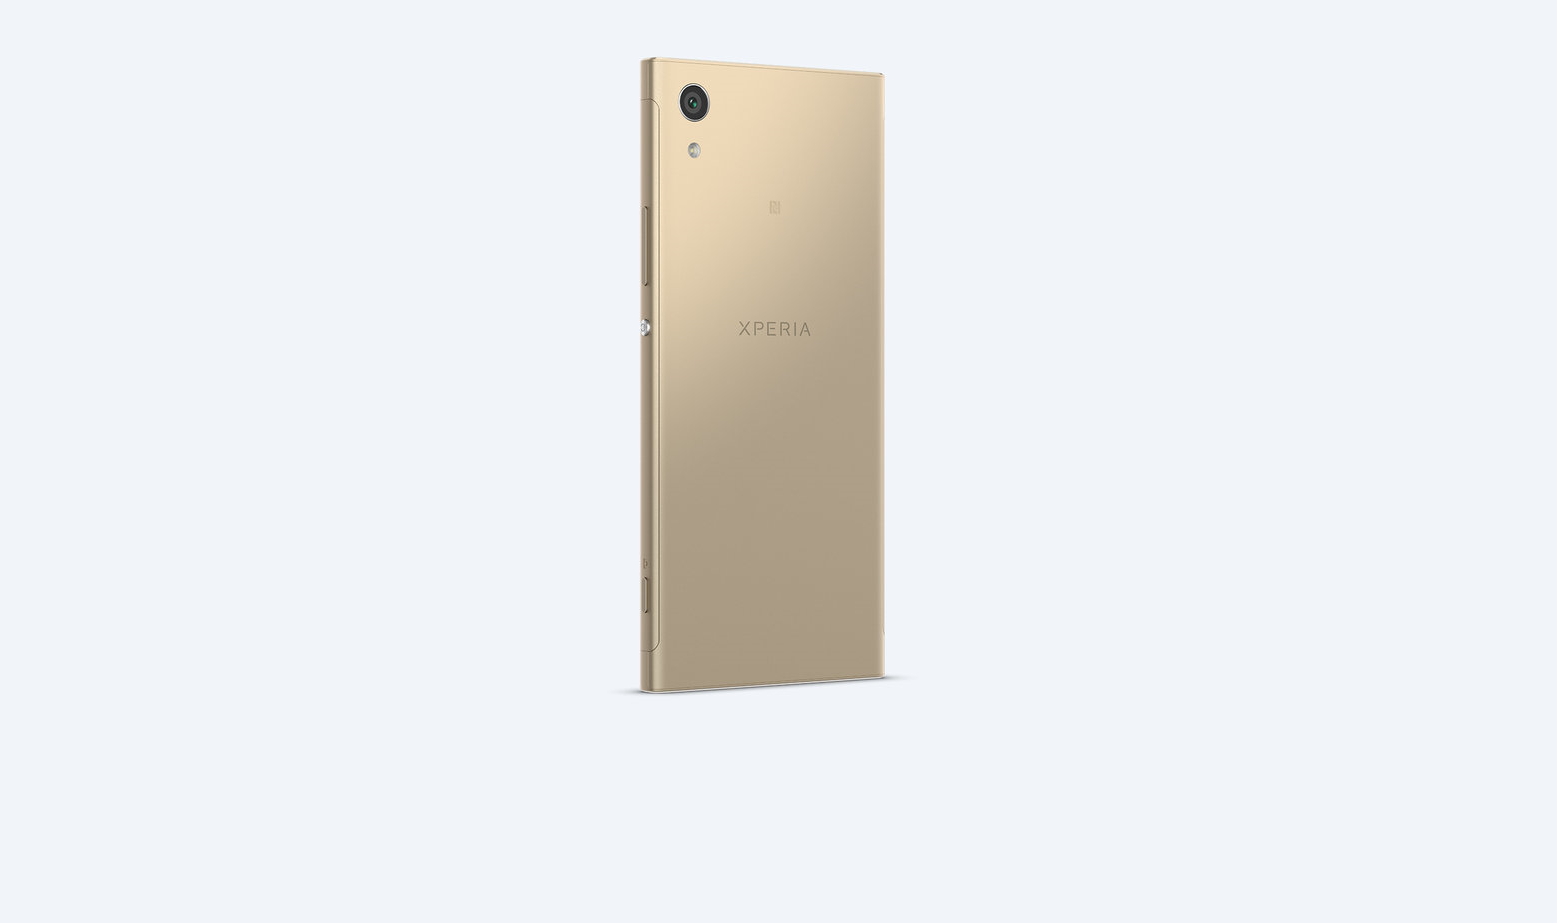 Sony Xperia XA2 Ultra Leaked Hands On Image Shows Dual Front Cameras !